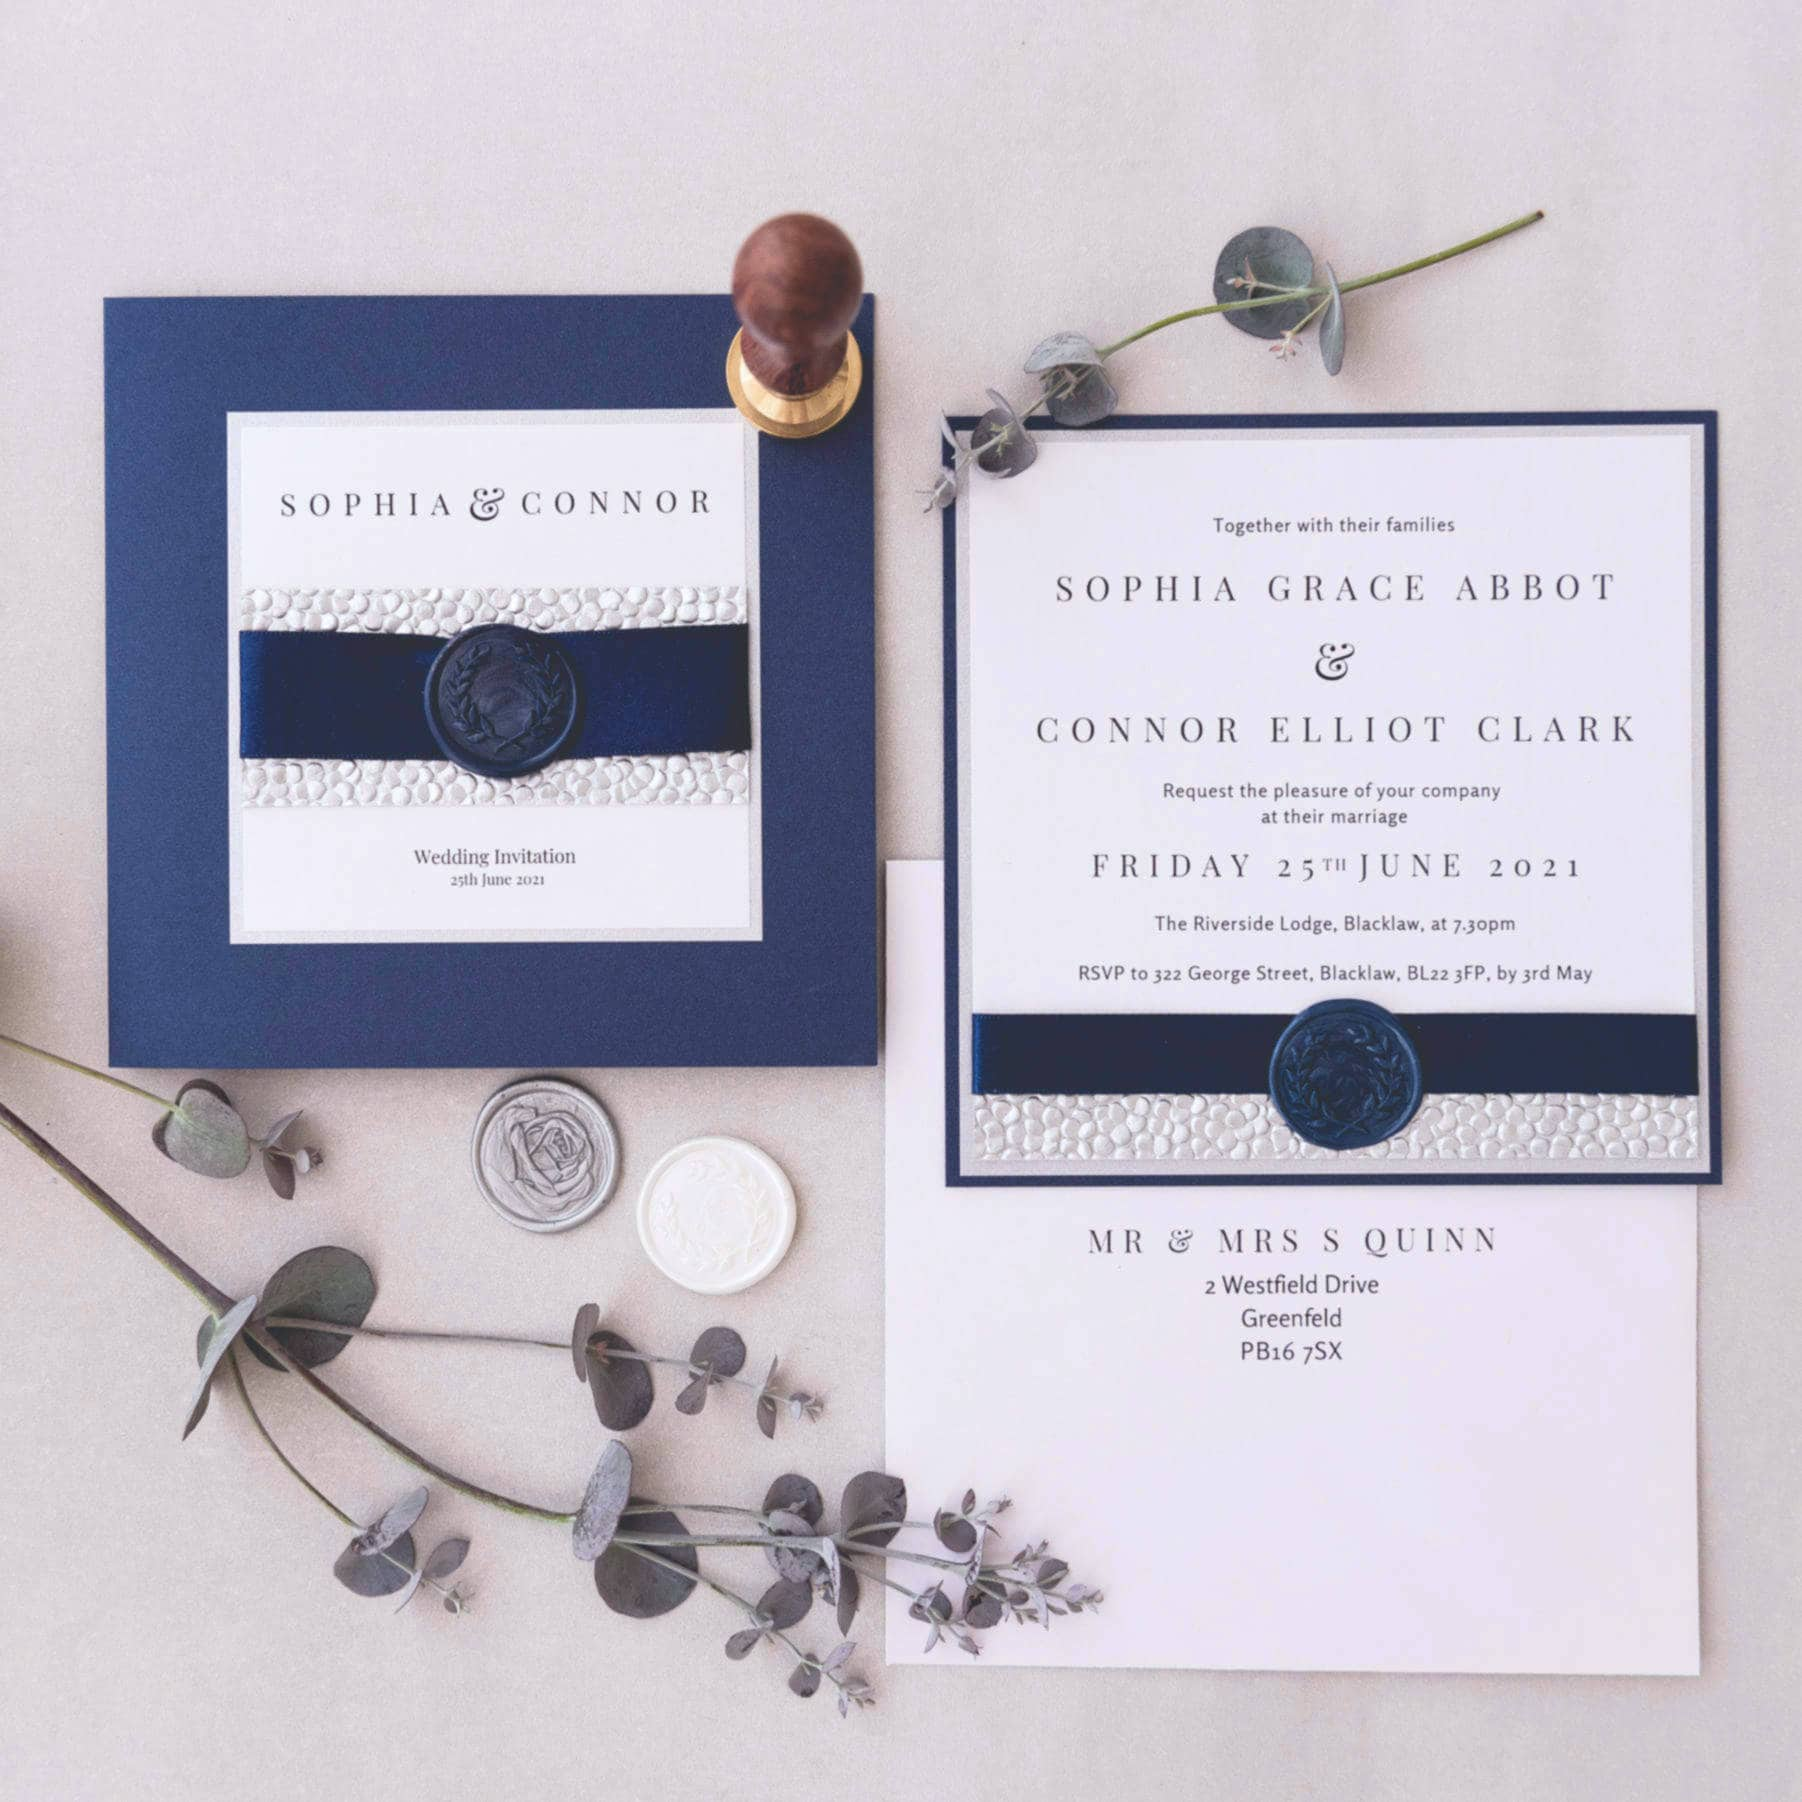 Handmade wax seal wedding invites Scotland